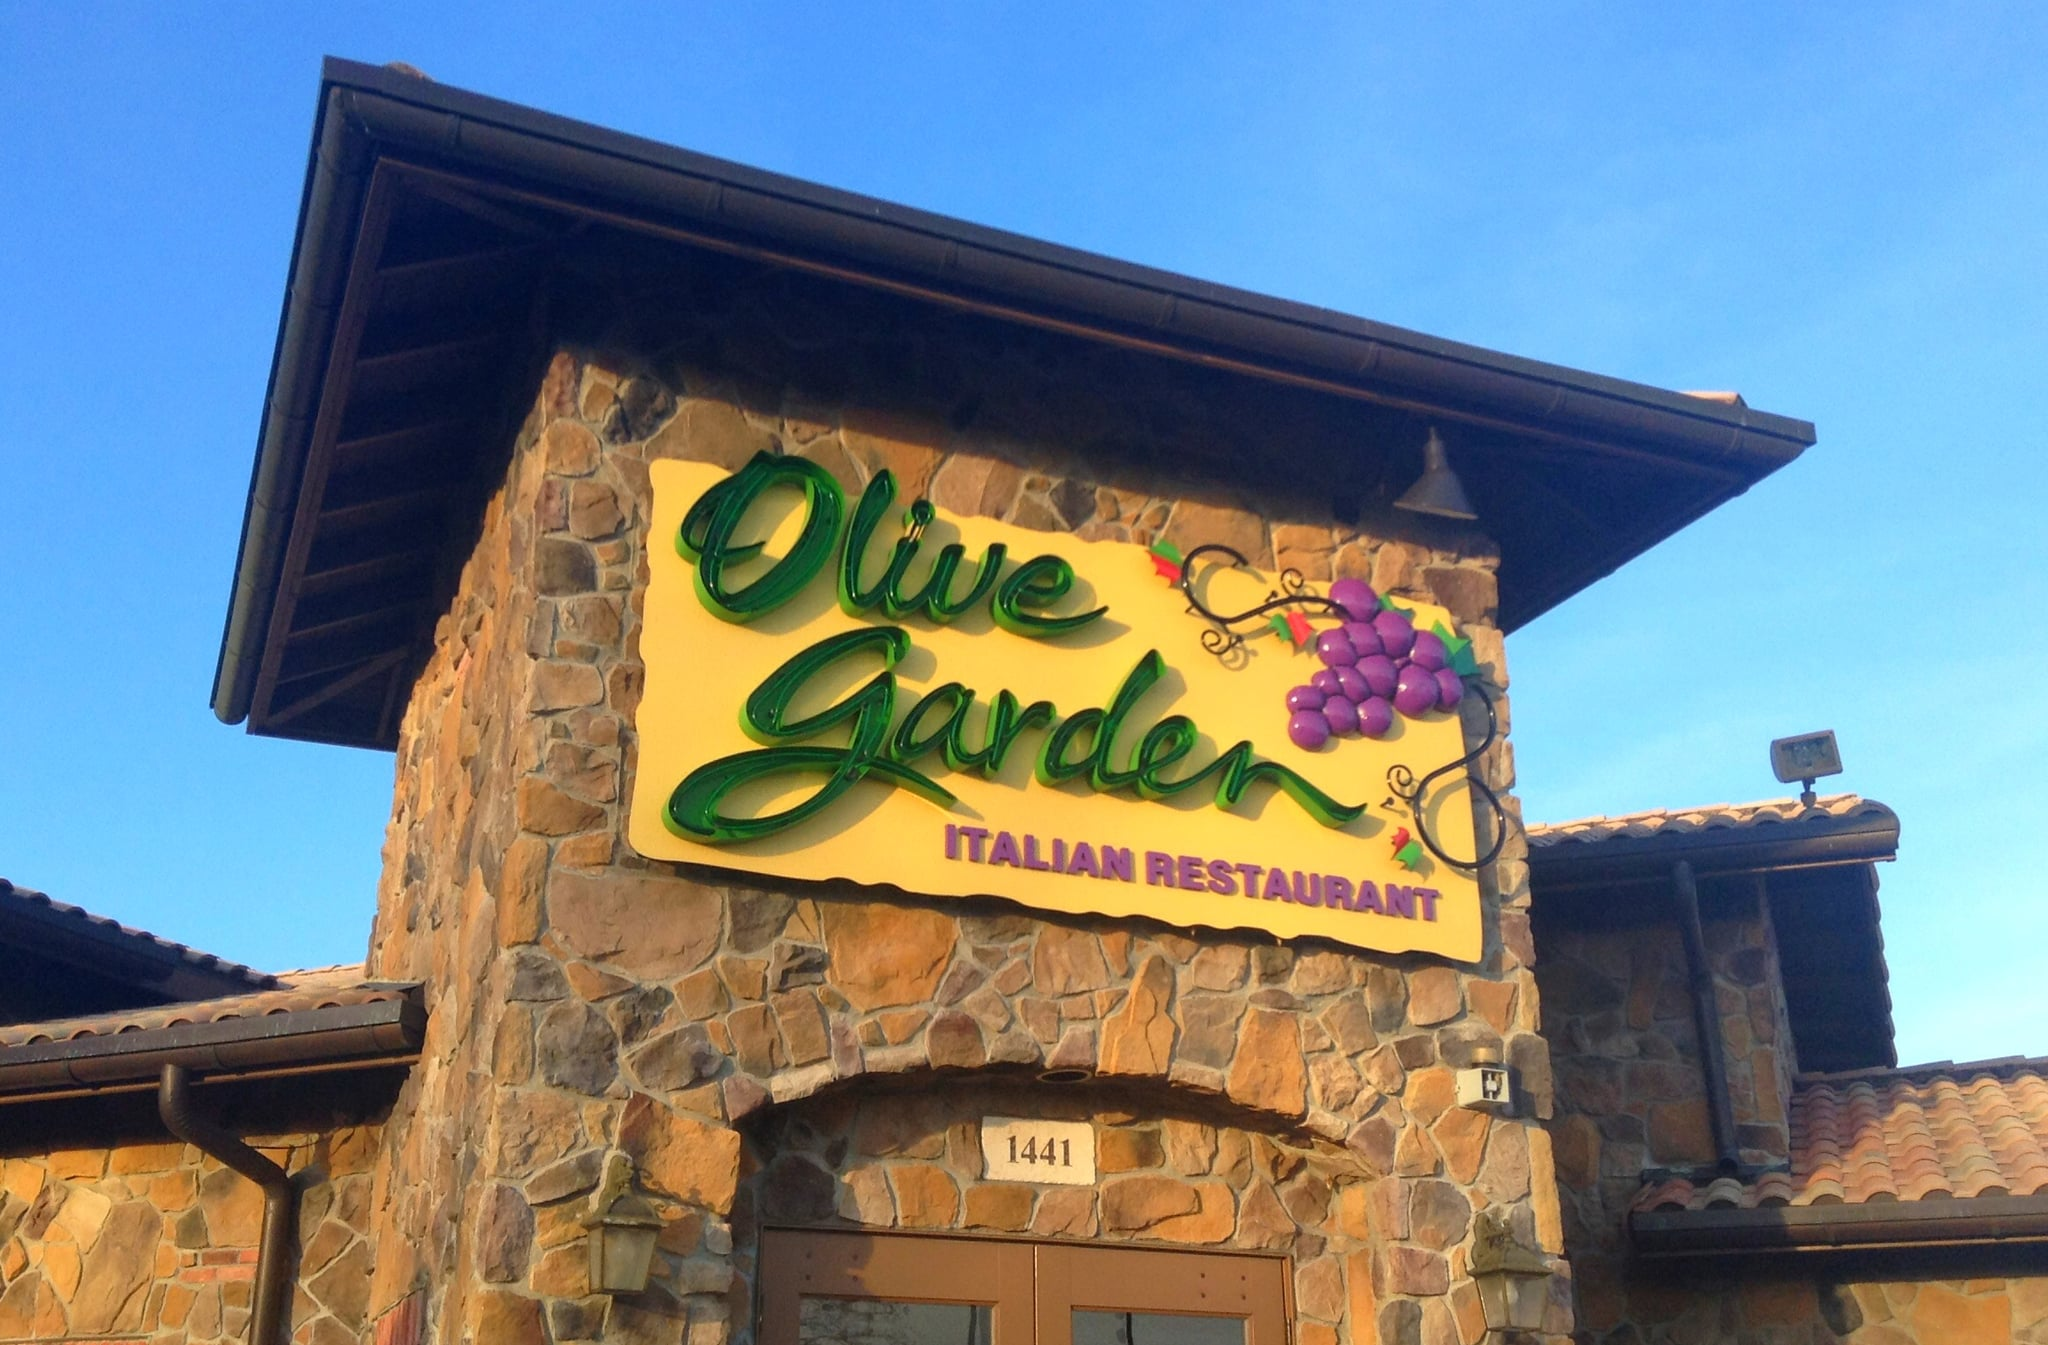 Olive garden secrets revealed popsugar food What time does the olive garden close